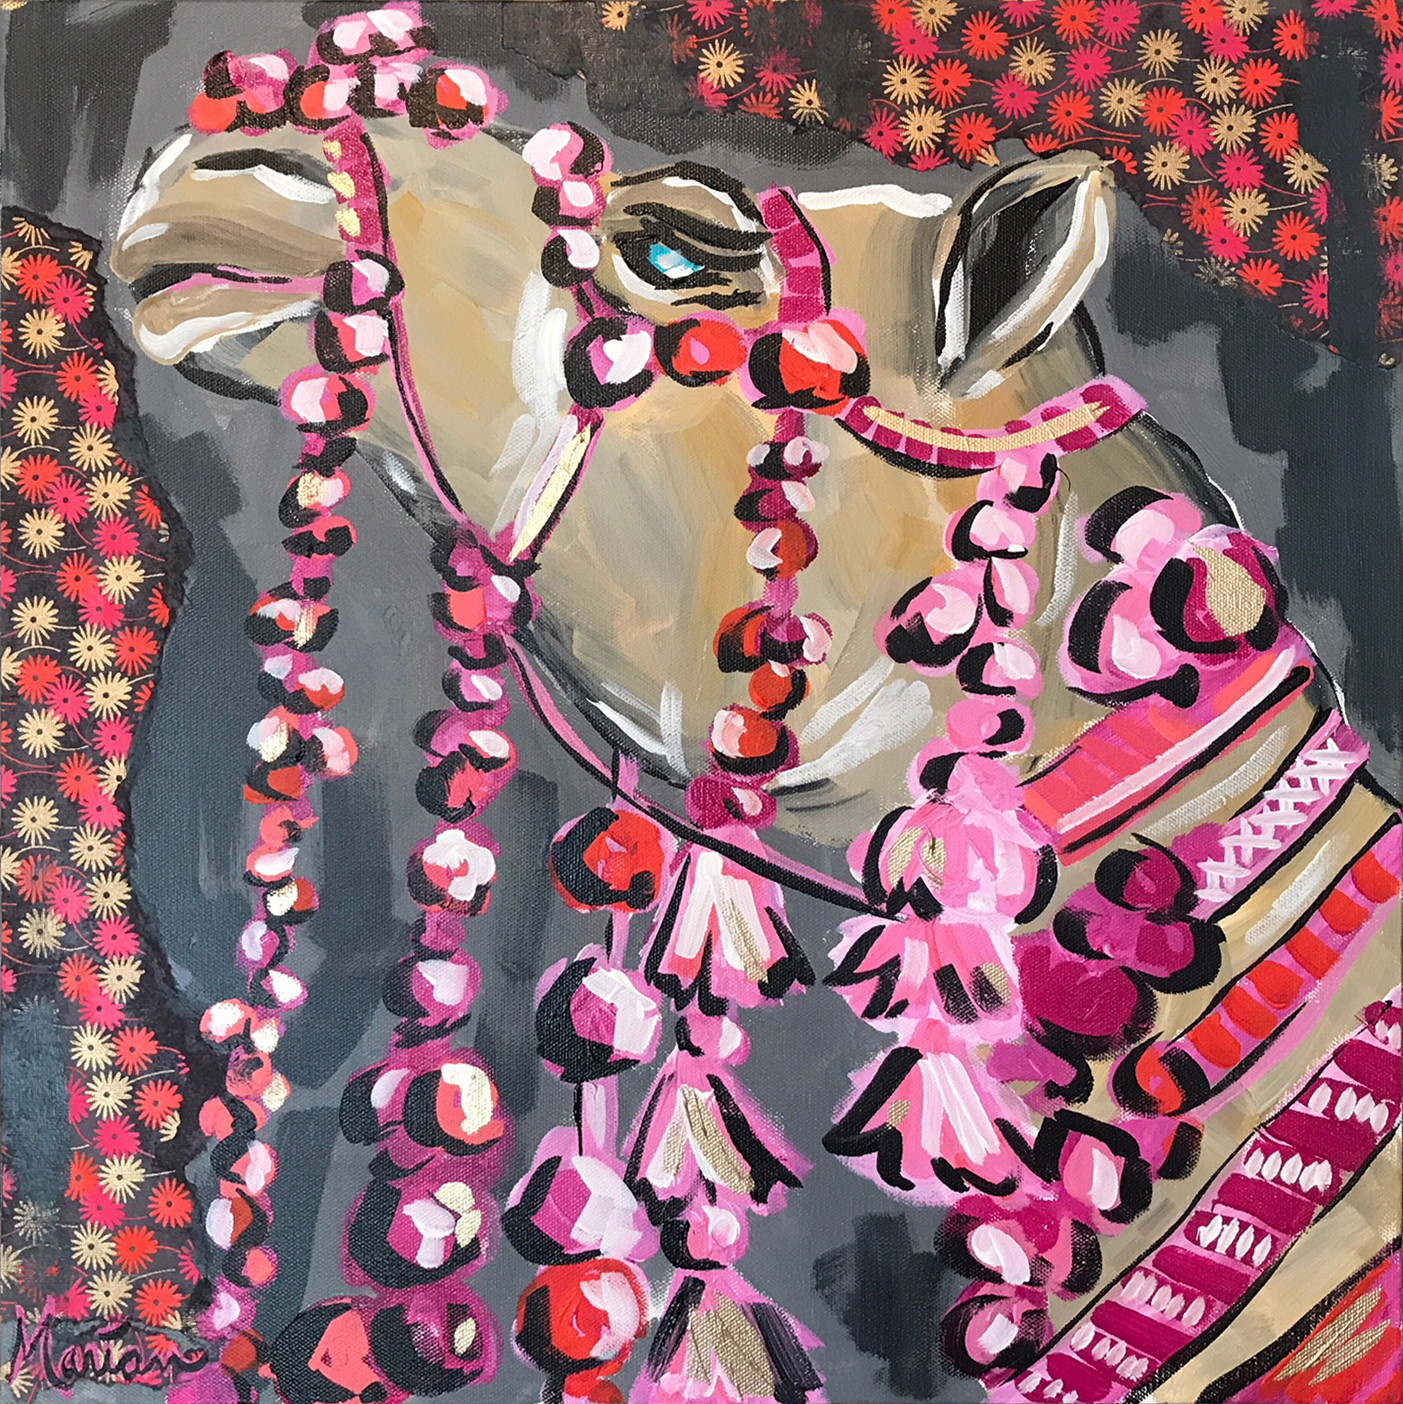 Camel 1Marian Pouch Find Your Joy Greenville SC Local artist painting acrylic bright color colorful..jpg